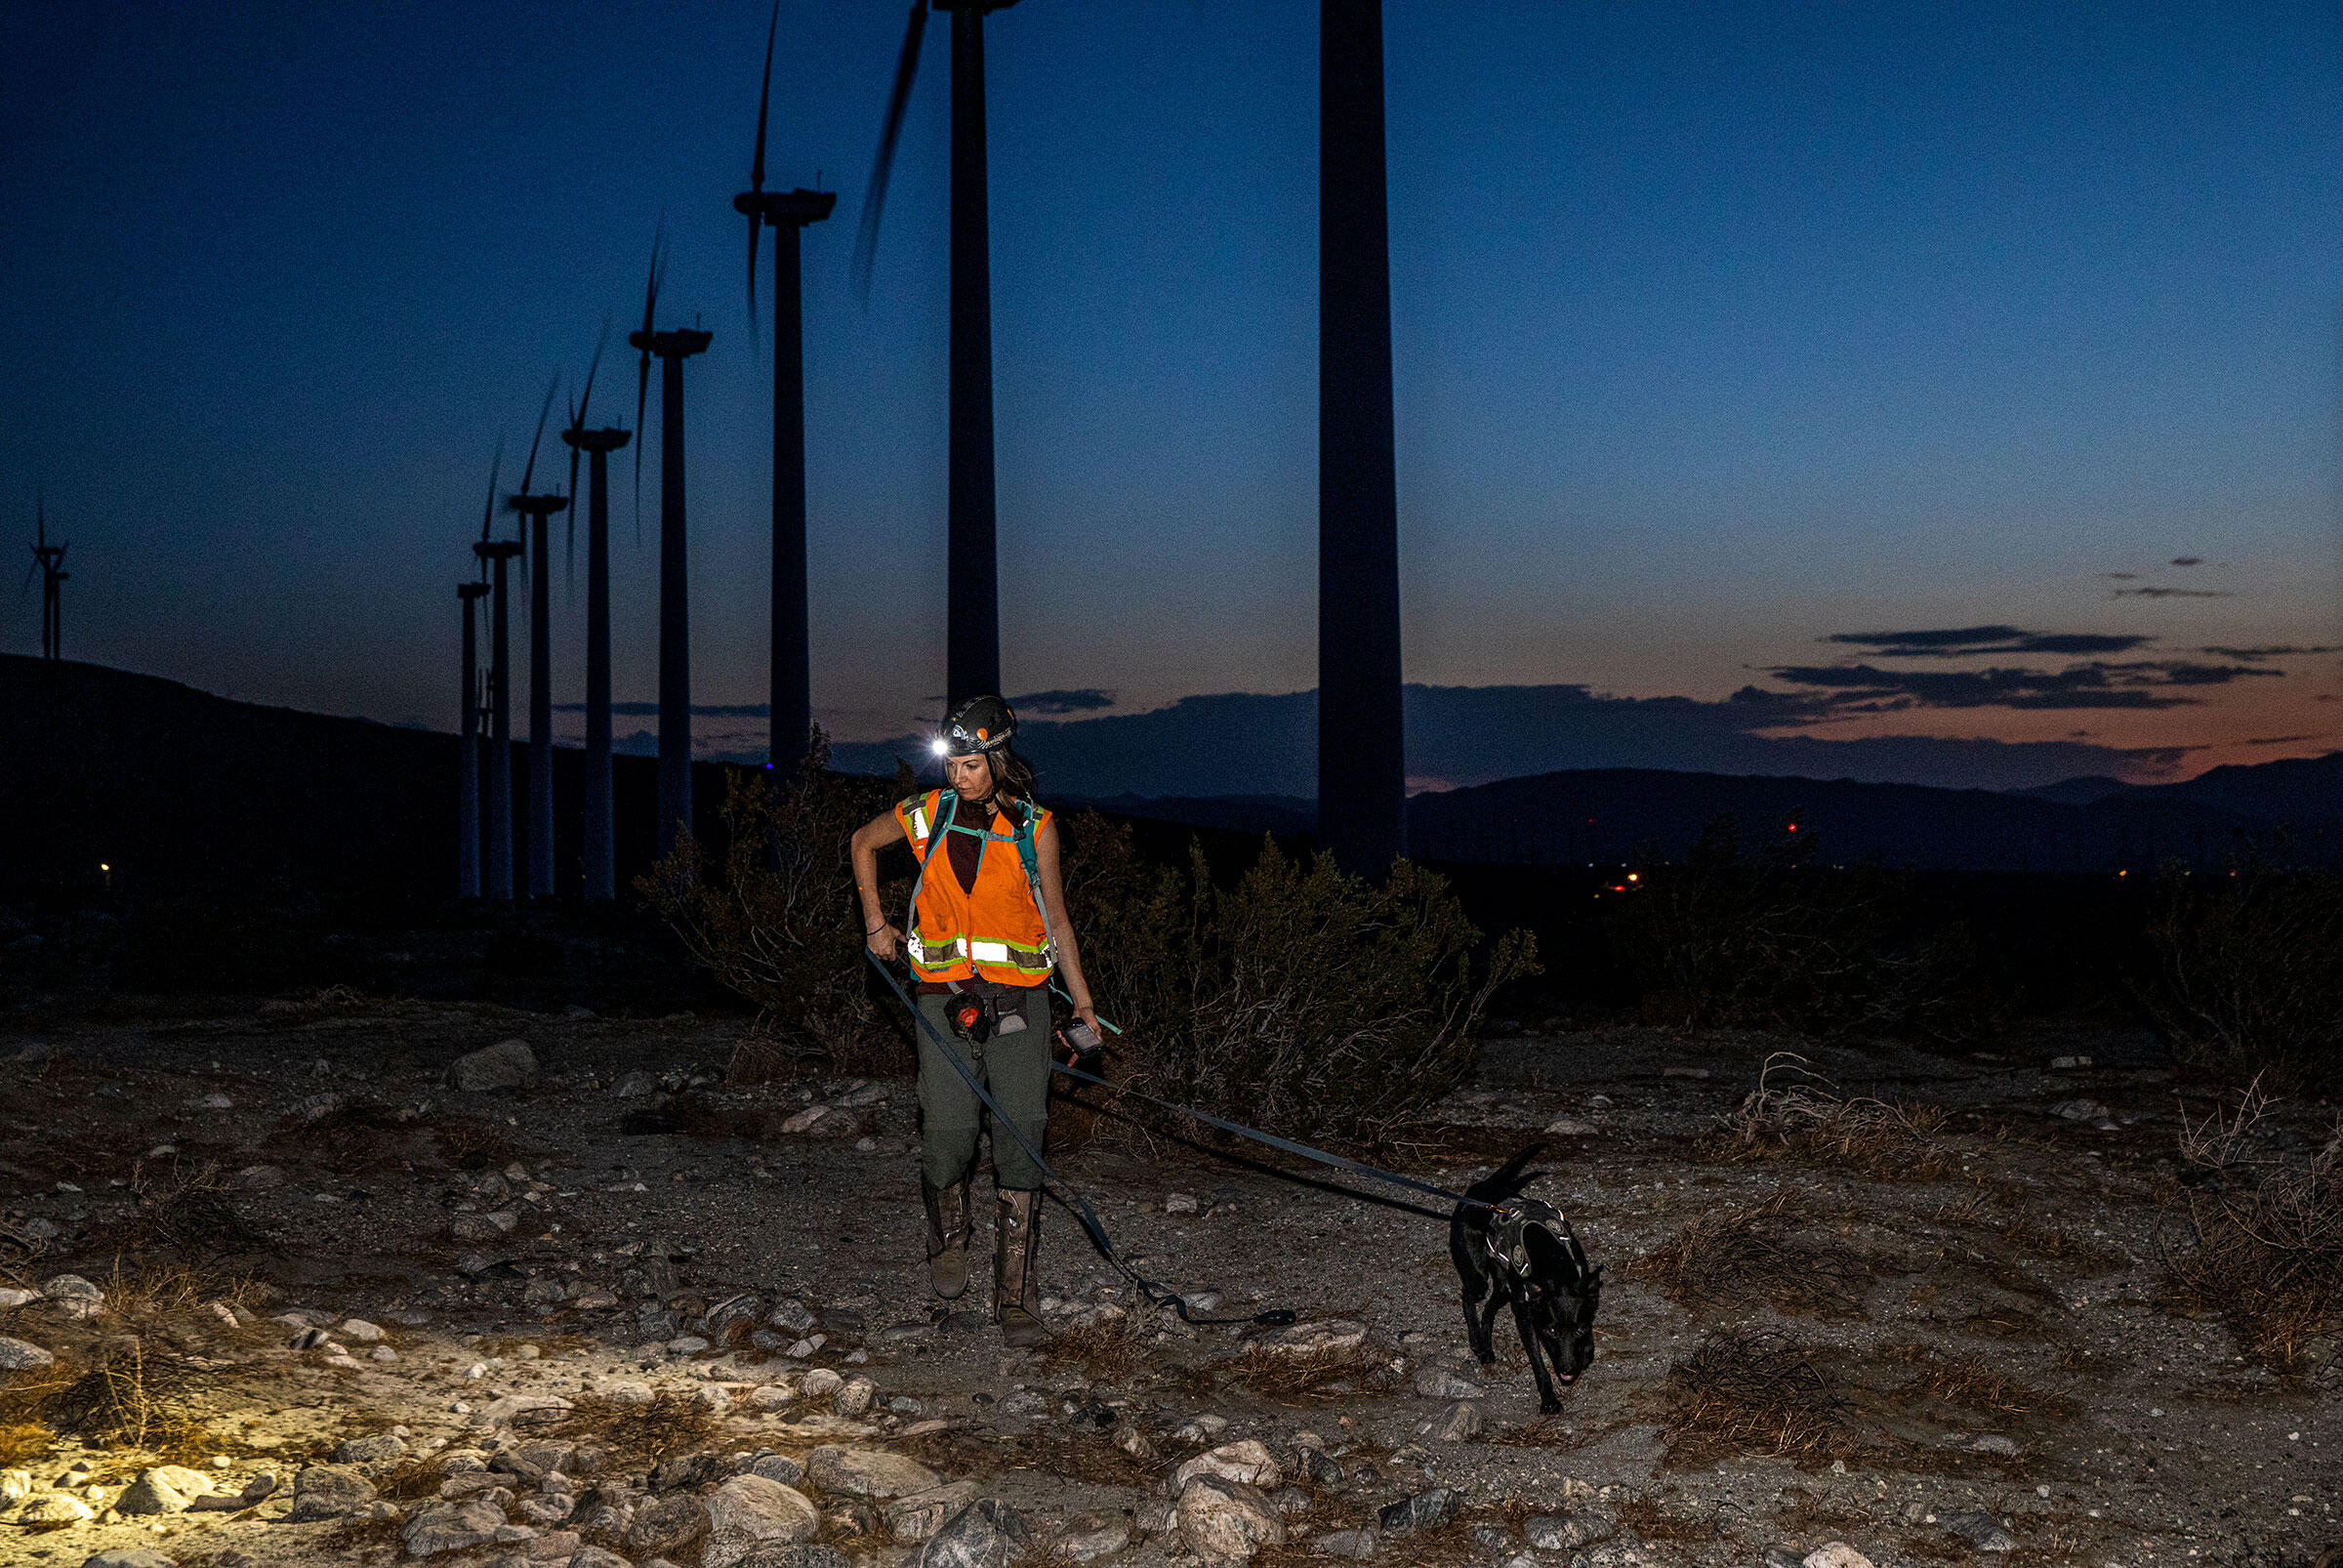 A woman wearing a bright orange vest illuminates a desert landscape with her headlamp as she walks with a black dog on a leash. Above them stands a row of wind turbines. Behind them, faint orange sunlight and a smattering of clouds mark the edge of a mostly dark, clear sky.